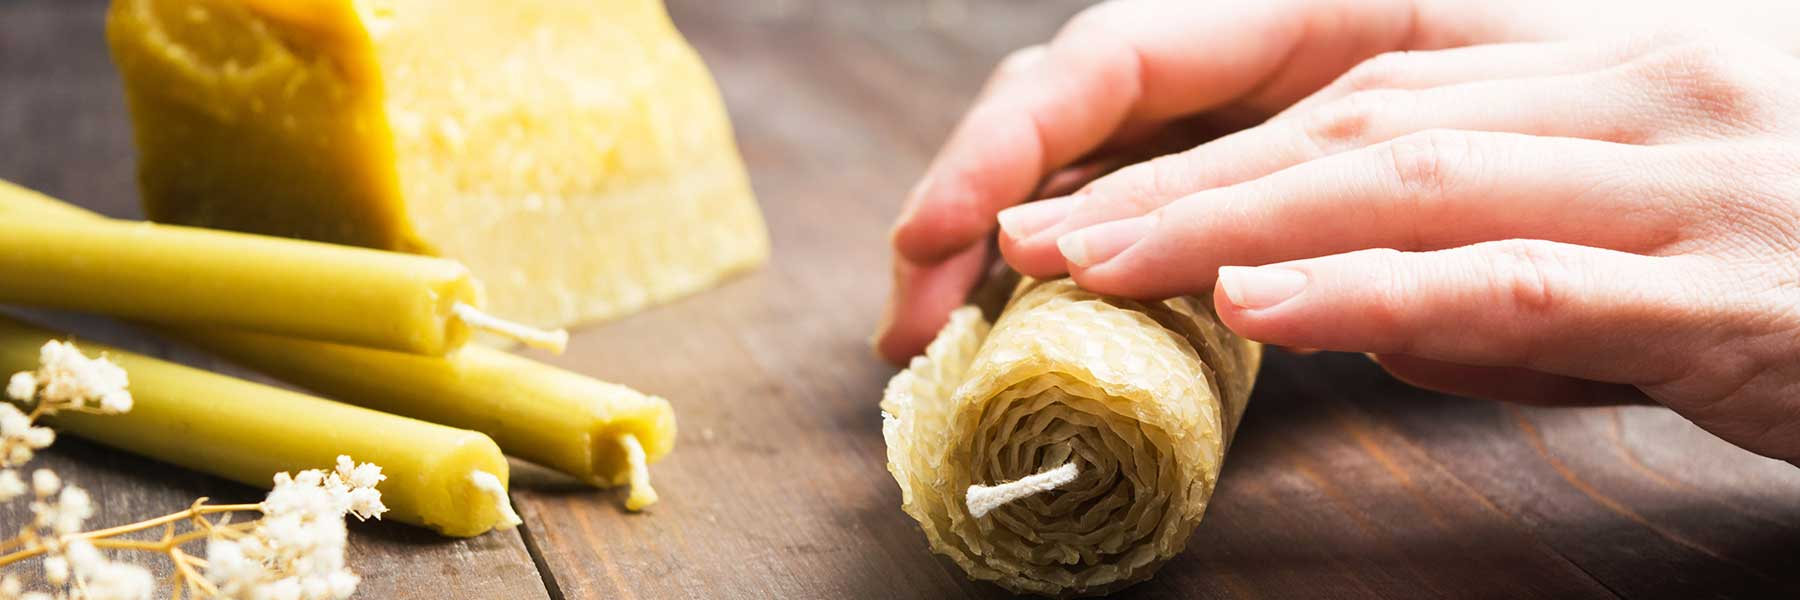 Close up of a pair of hands rolling a beeswax candle.